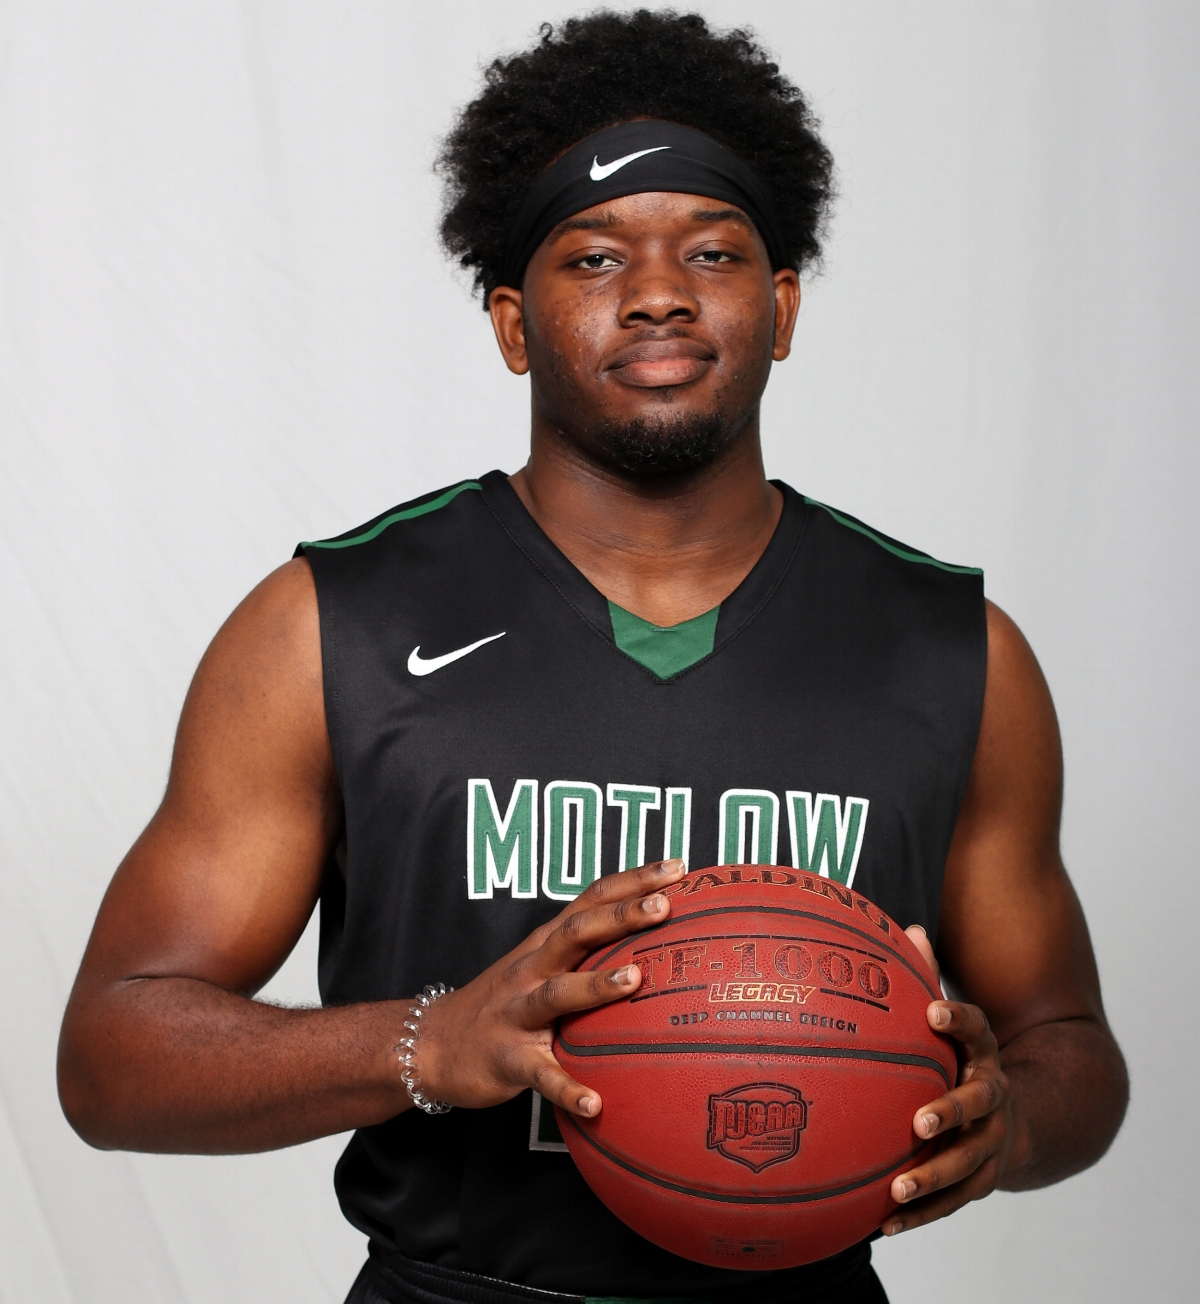 Marcus Lacey, a redshirt-freshman from Madison, Ala., announced his arrival to the junior college basketball world Friday night, scoring 26 points with 16 rebounds during Motlow's 76-71 loss to Georgia Highlands, The Bucks will host Jackson State this coming Friday and Columbia State Saturday.  Motlow Staff Photo.